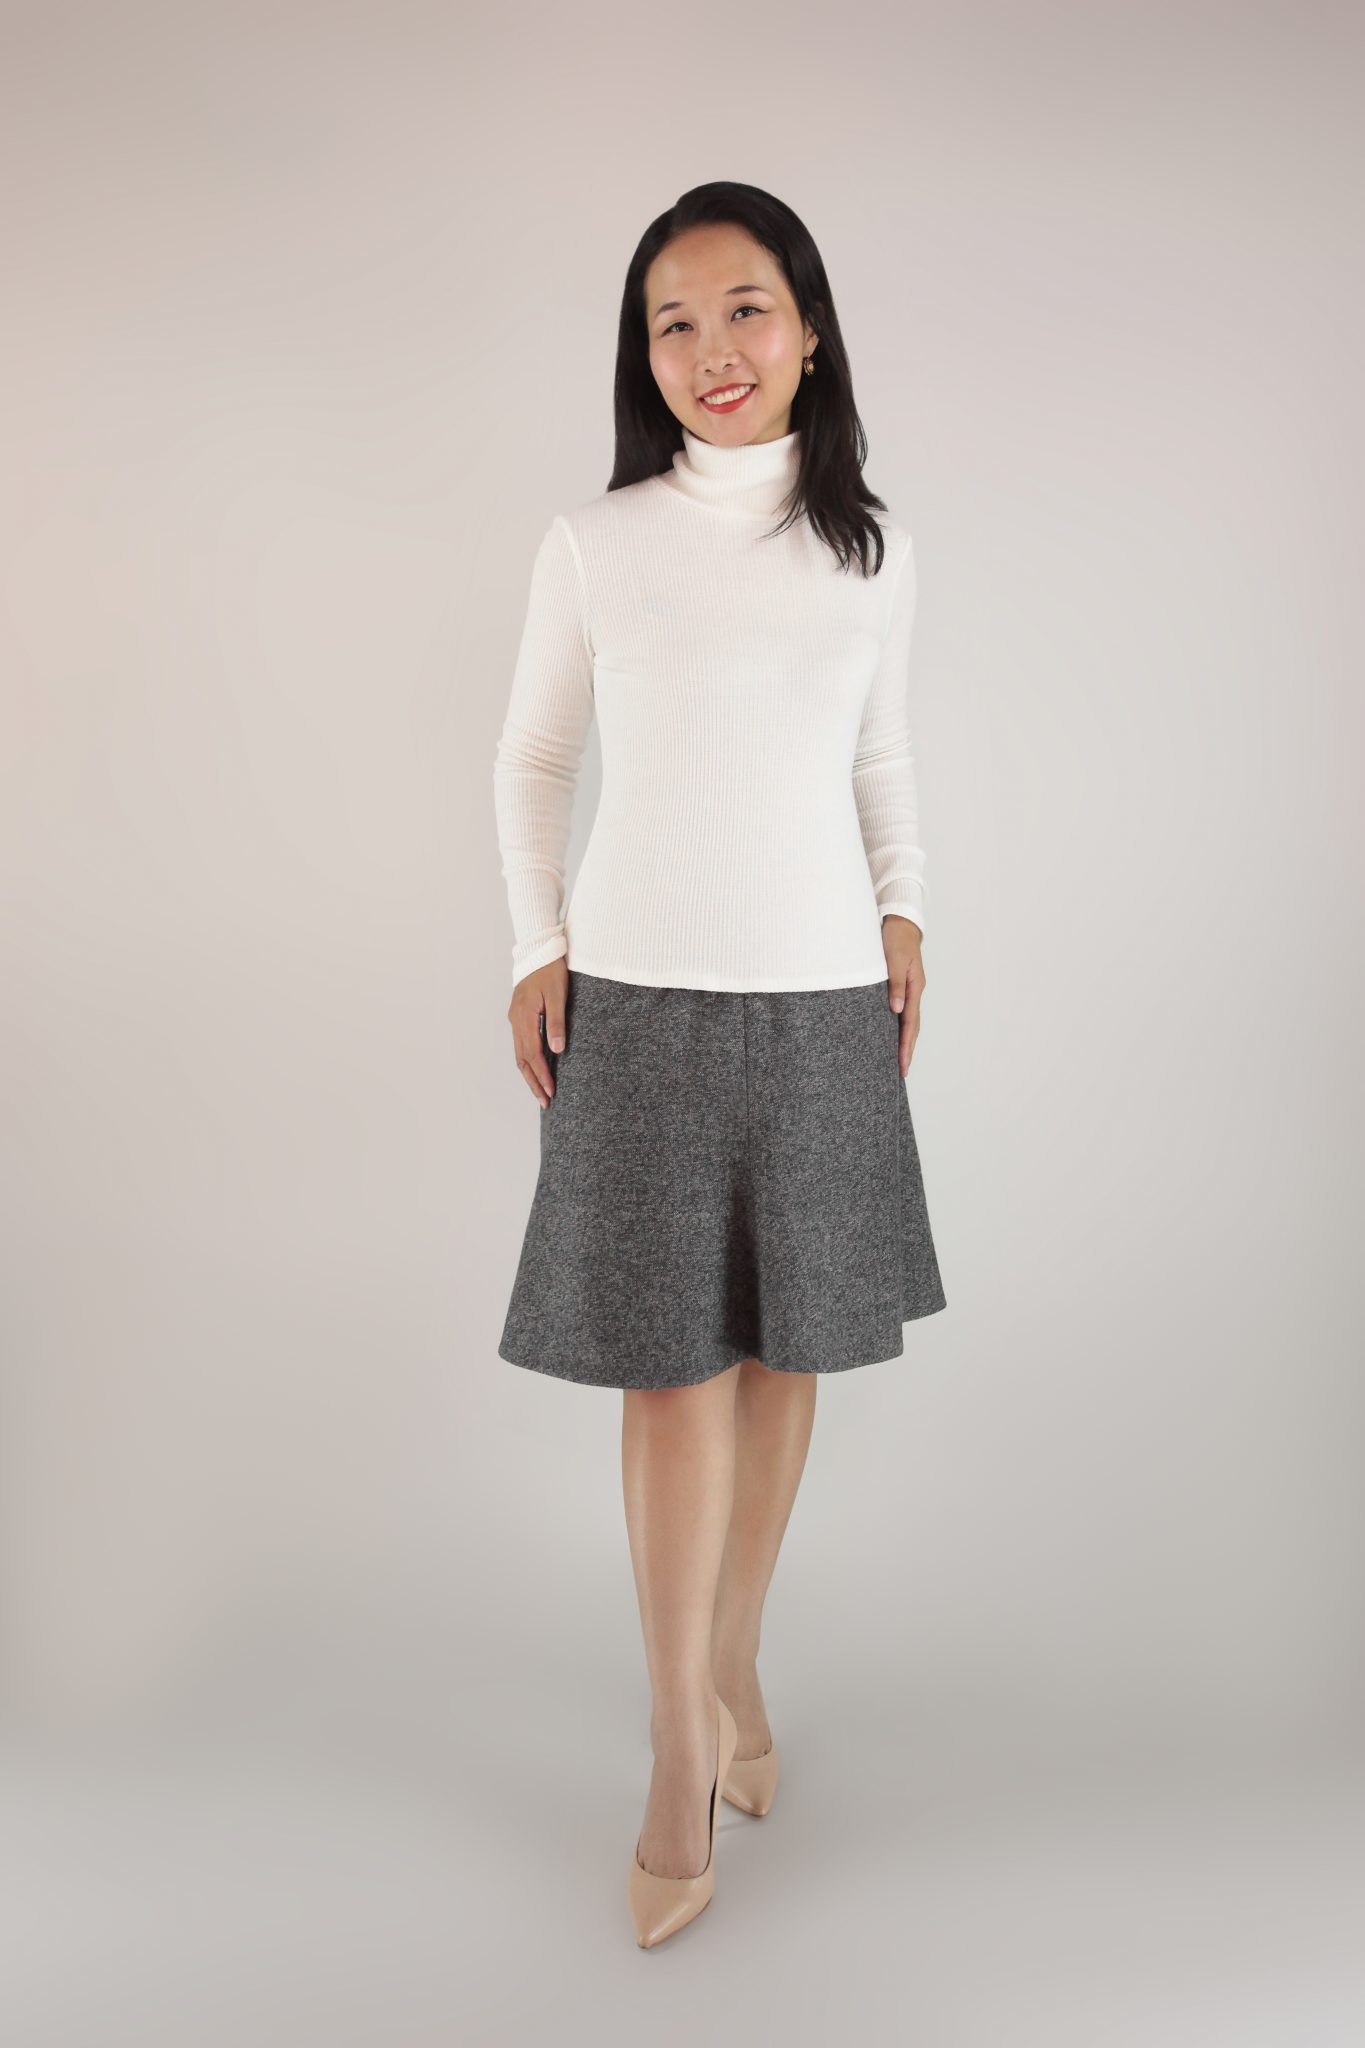 Testing Call: Jacket, Skirt, Top & Blouse Patterns - Itch ...